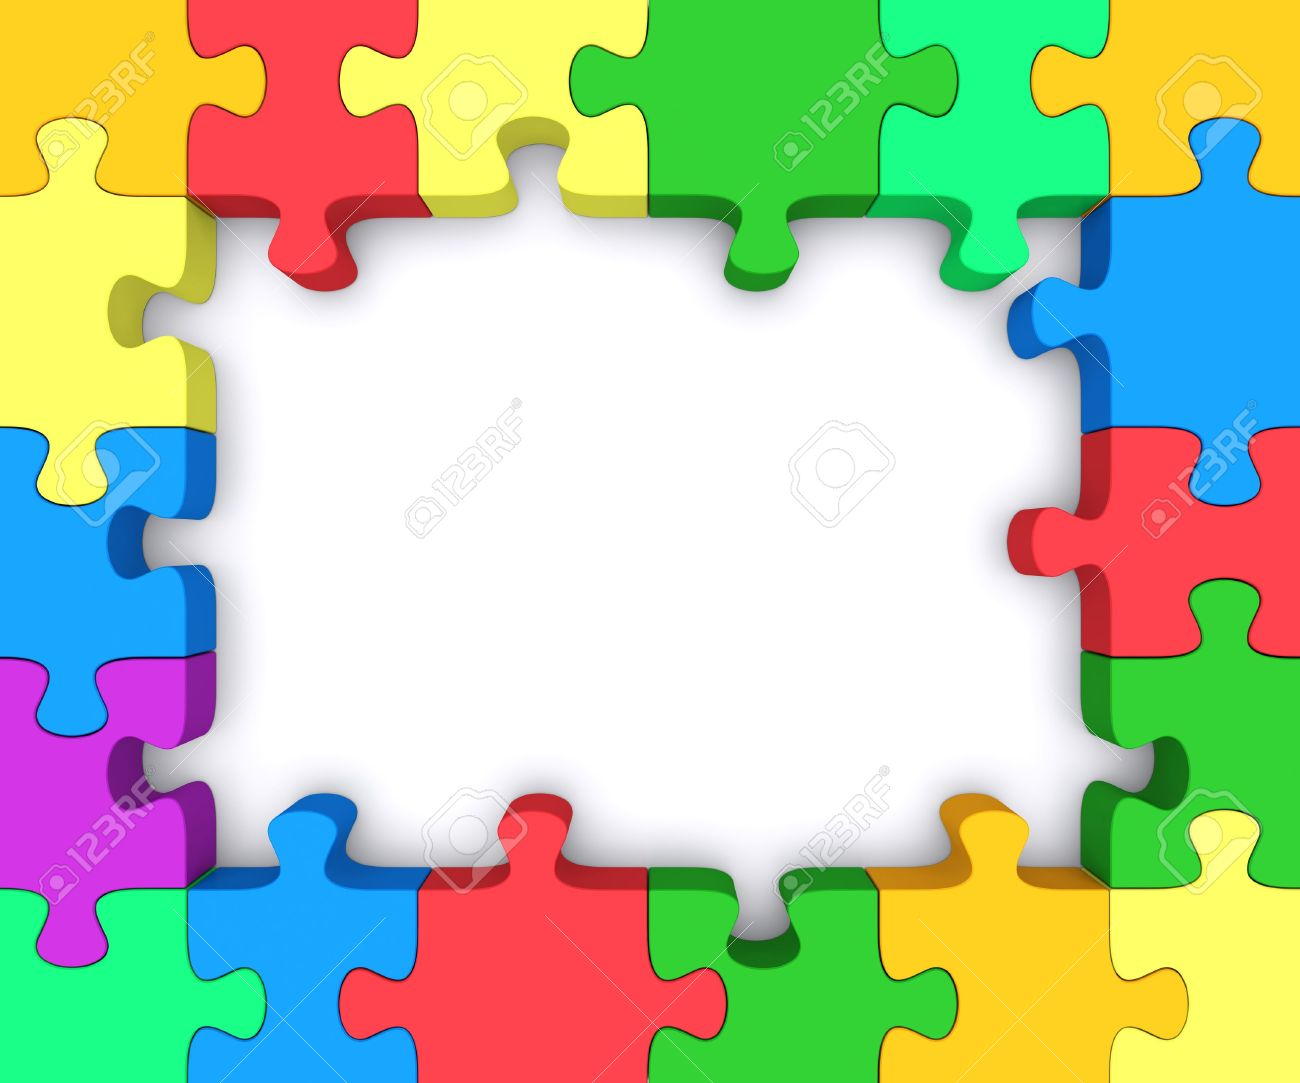 Puzzle Piece Frames Pieces of Colored Puzzles